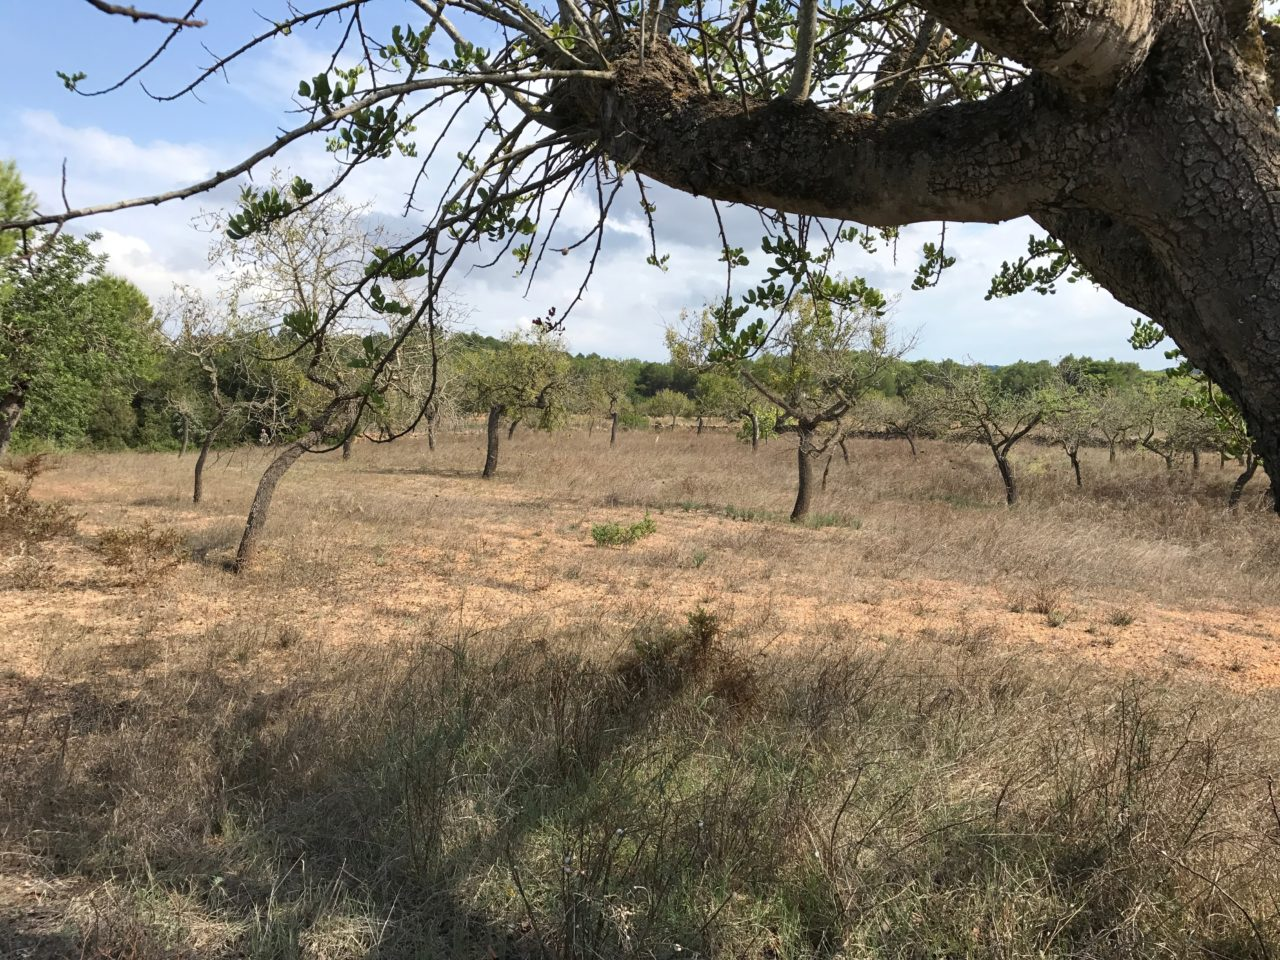 Urban Orchard With Dry Grass And Trees